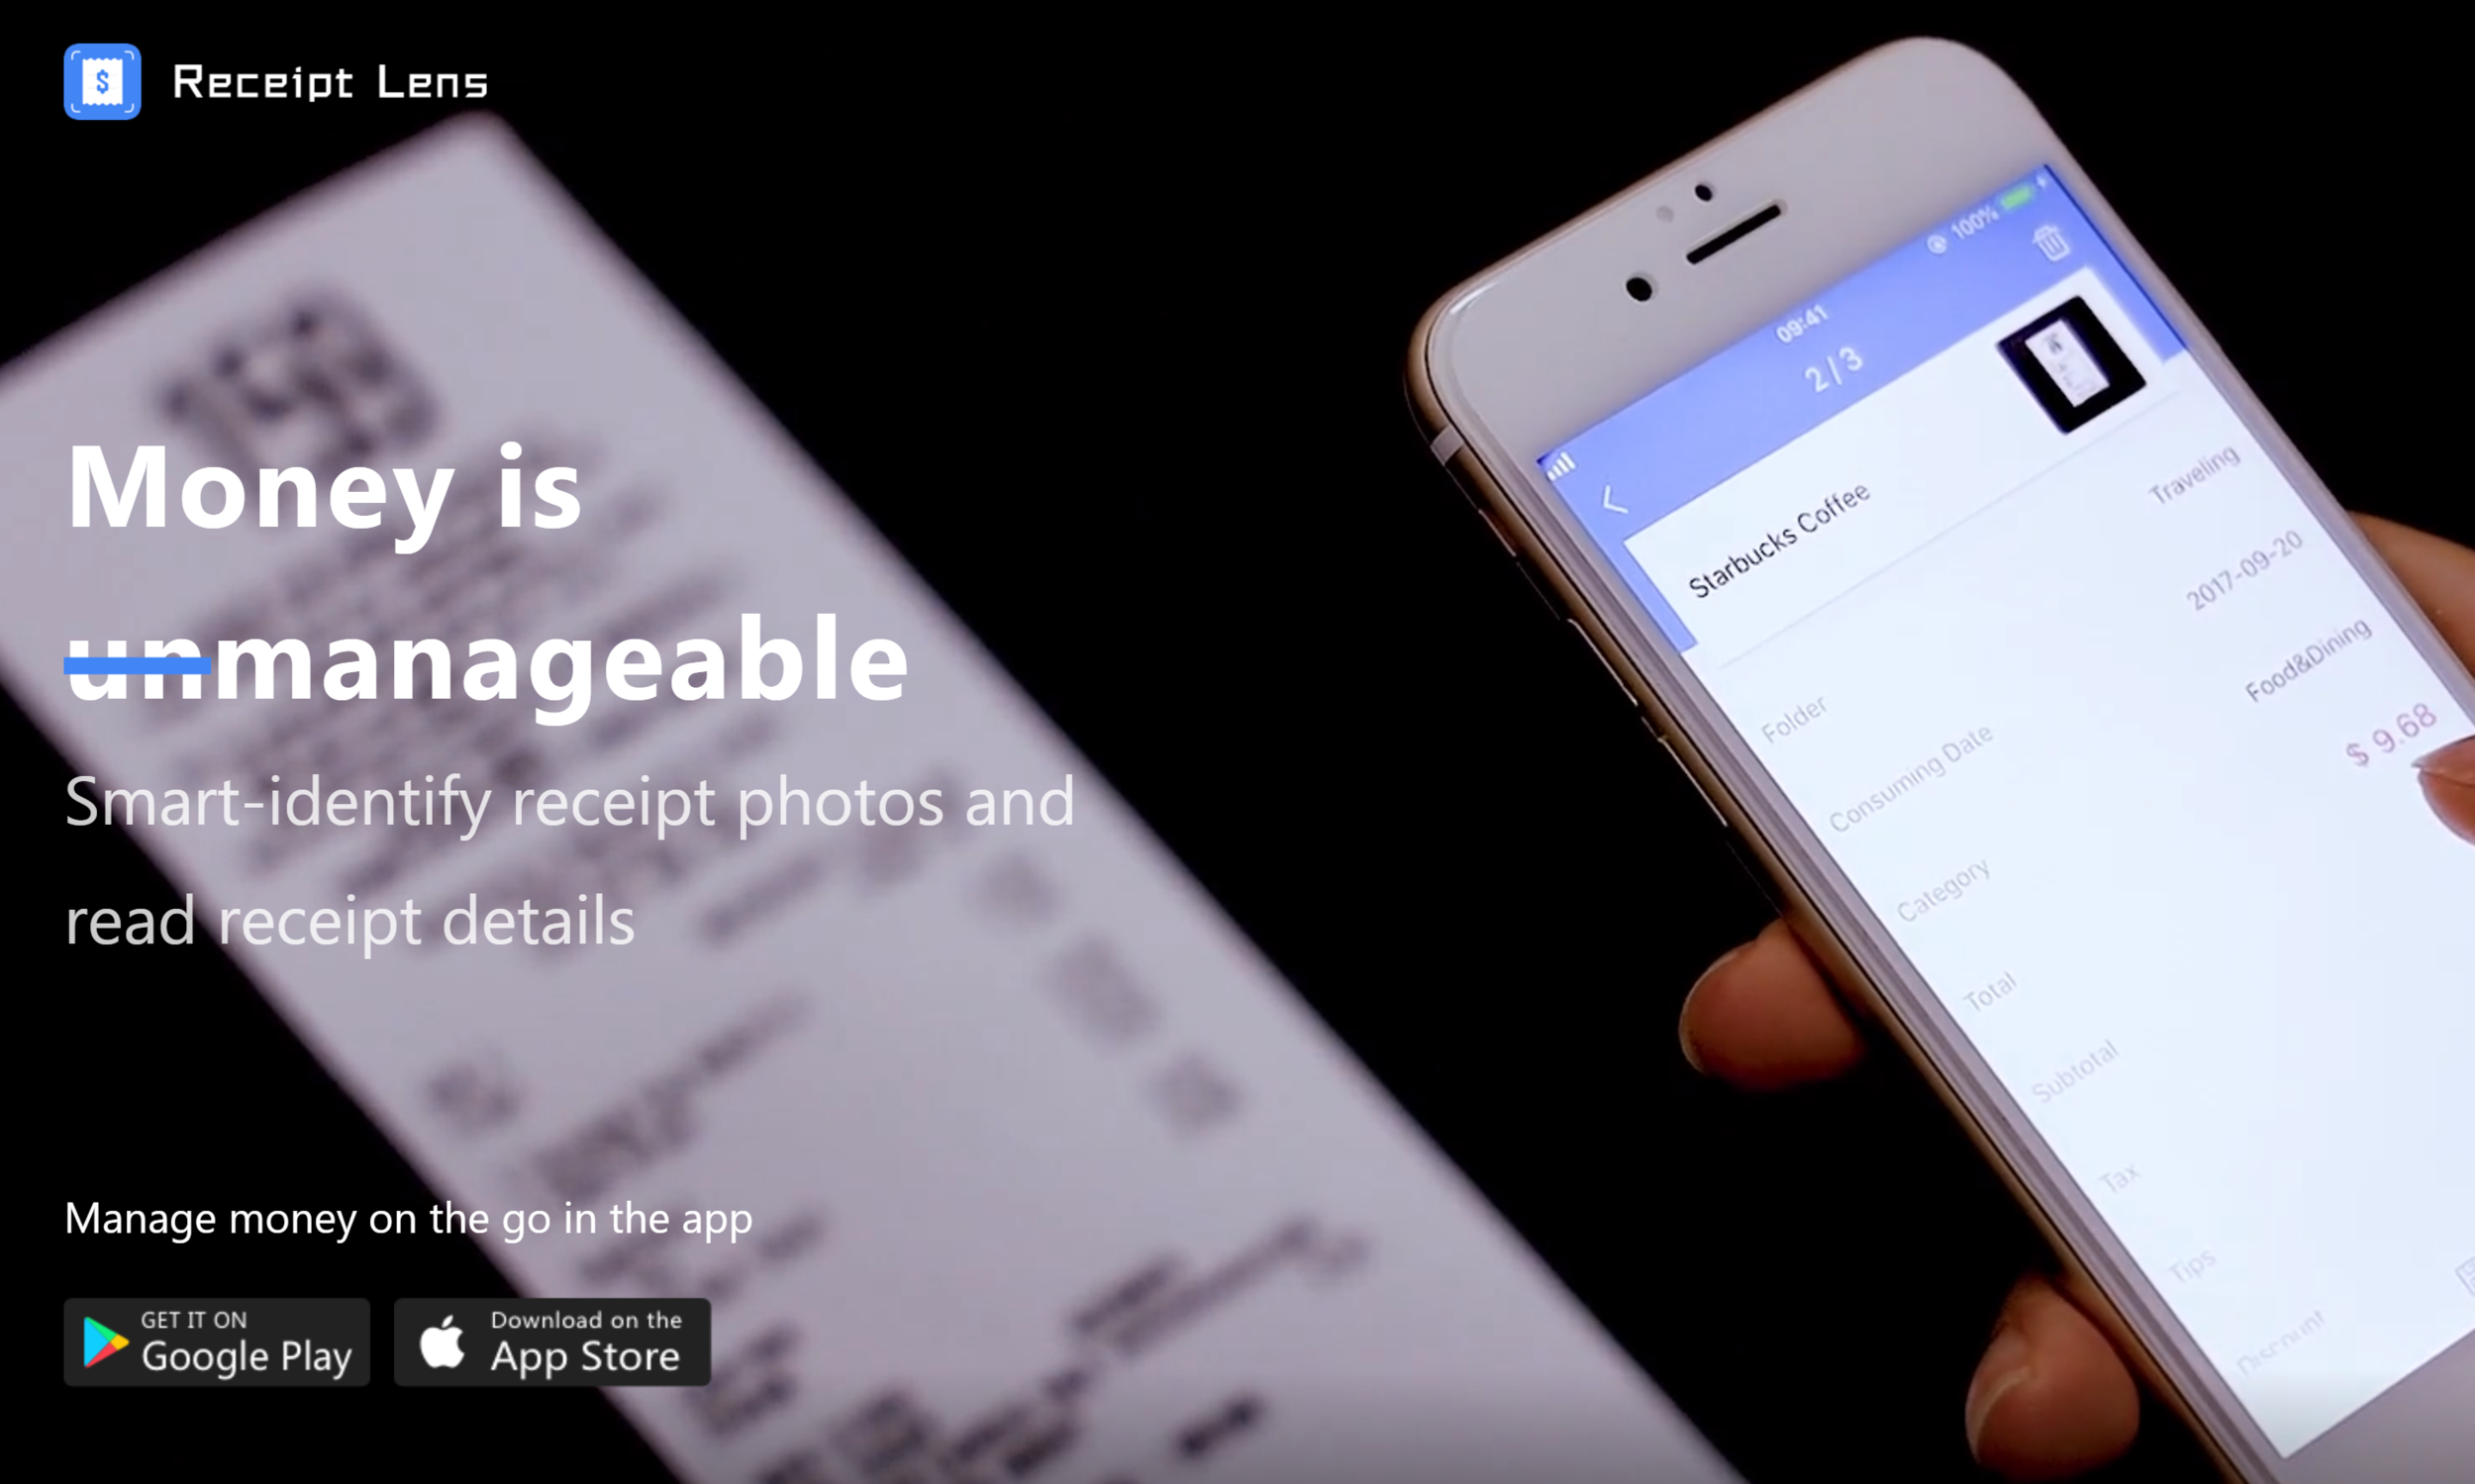 Receipt Lens - A Google and iOS App for smart identification of receipt photos, with support of various types of receipts and invoices. Receipts can be categorized, tagged, and grouped into customized folders that can also be shared.. Selected receipts can be generated into your expense reports or exported into e-mail and QuickBooks.